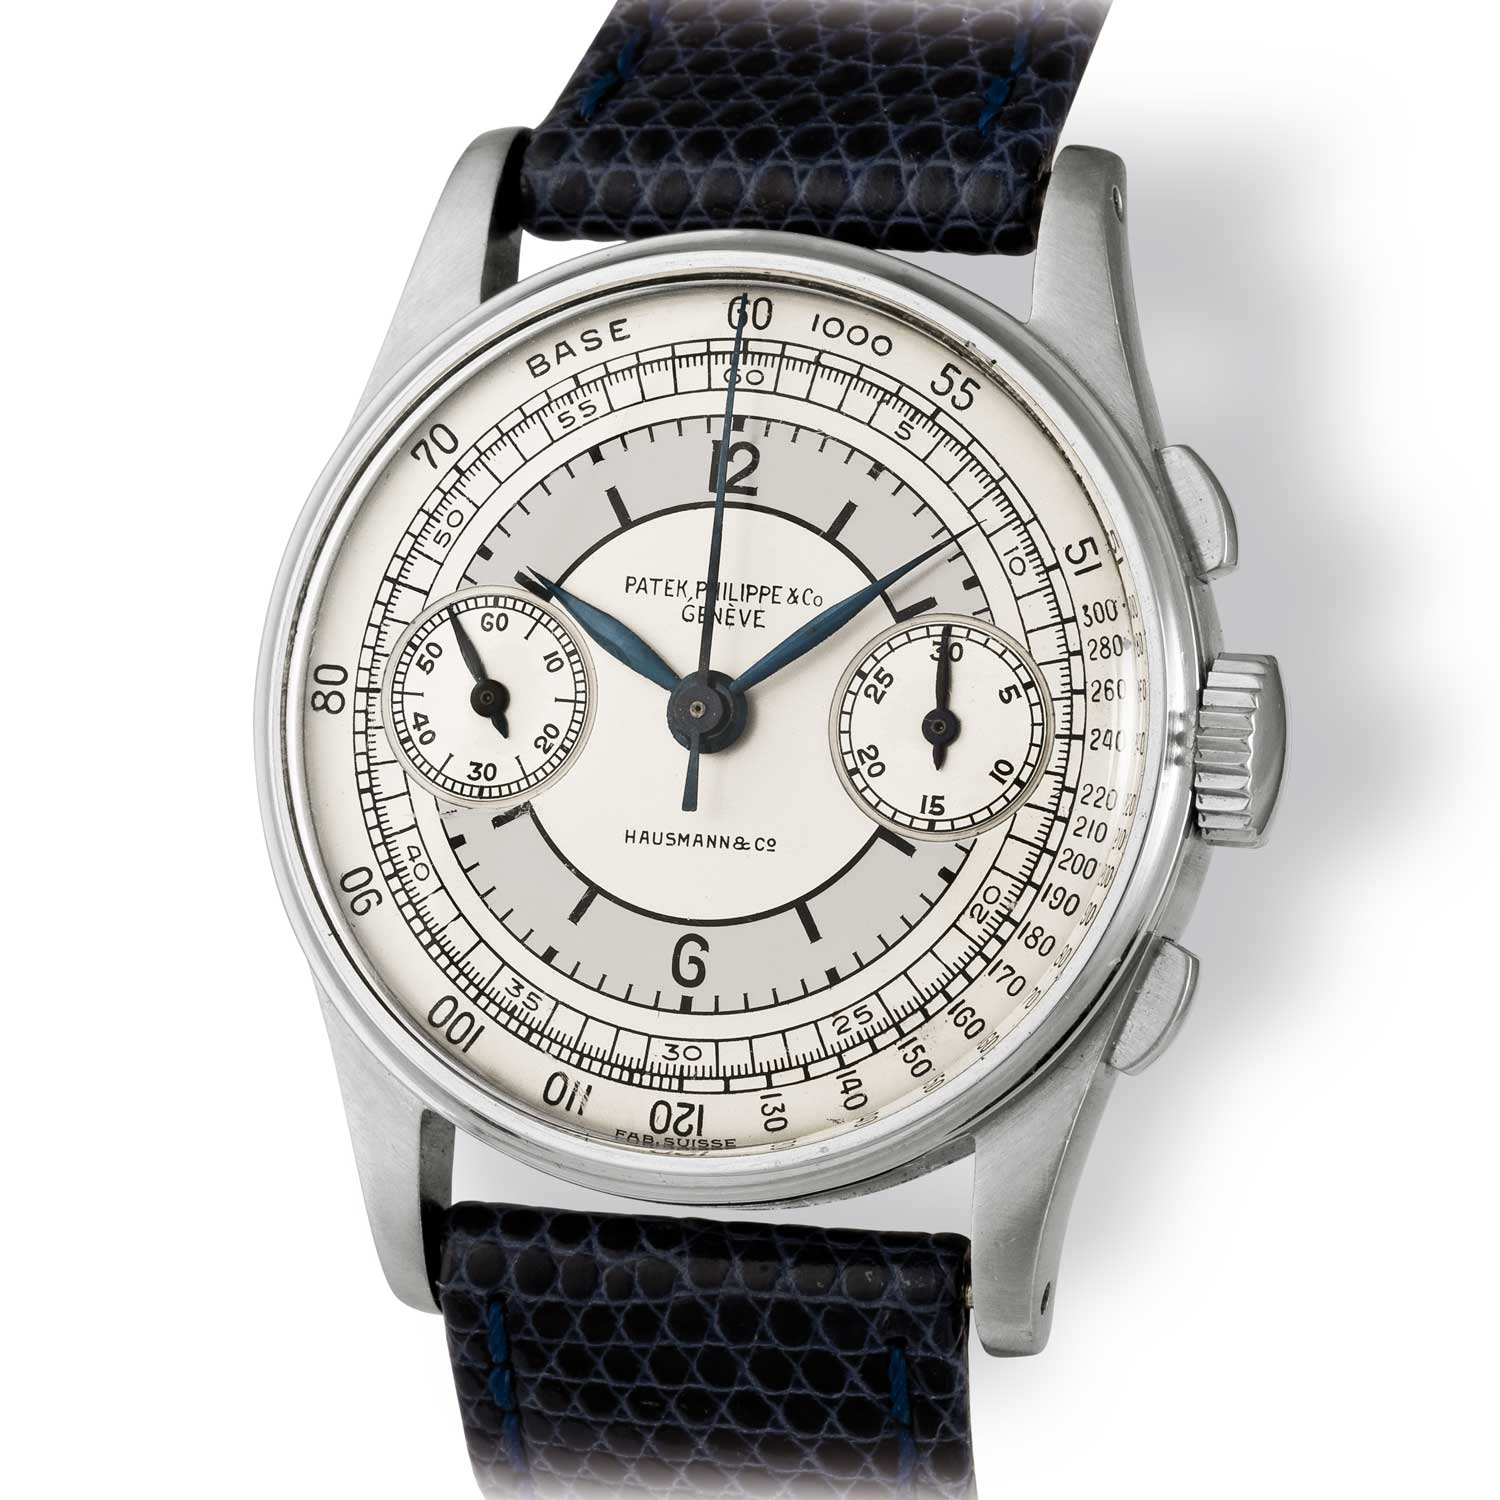 Patek Philippe ref. 130 steel chronograph with sector dial and tachymeter scale (Image: John Goldberger)